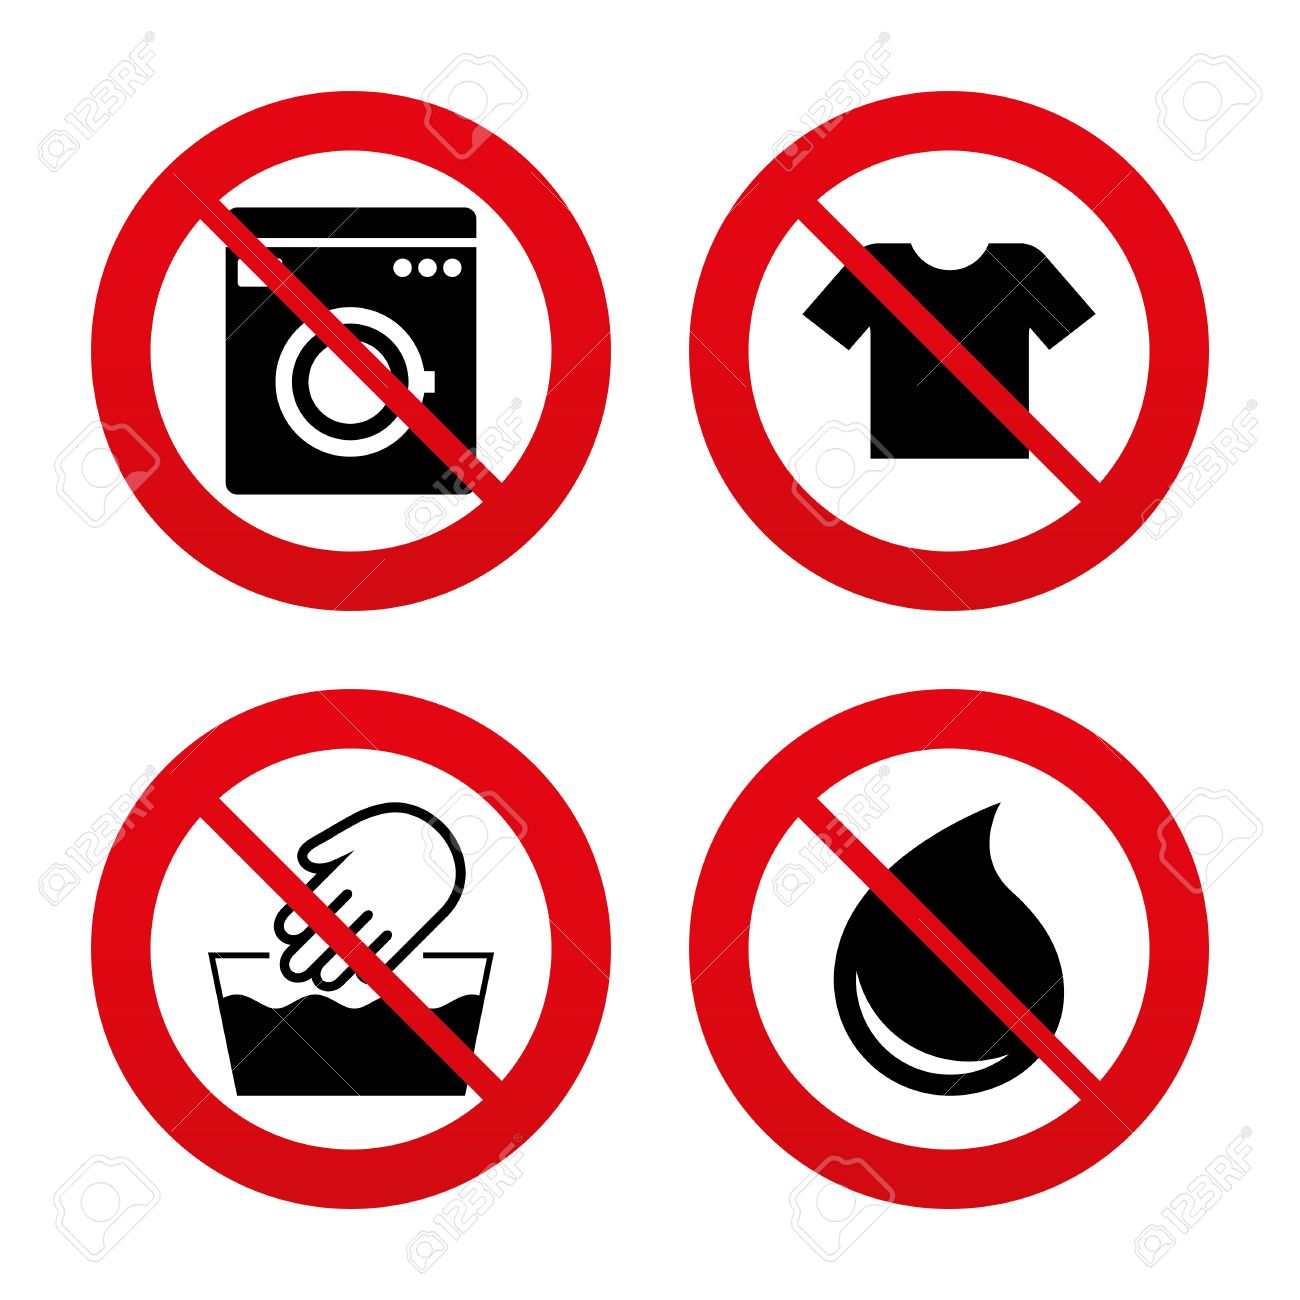 No Ban Or Stop Signs Wash Machine Icon Hand T